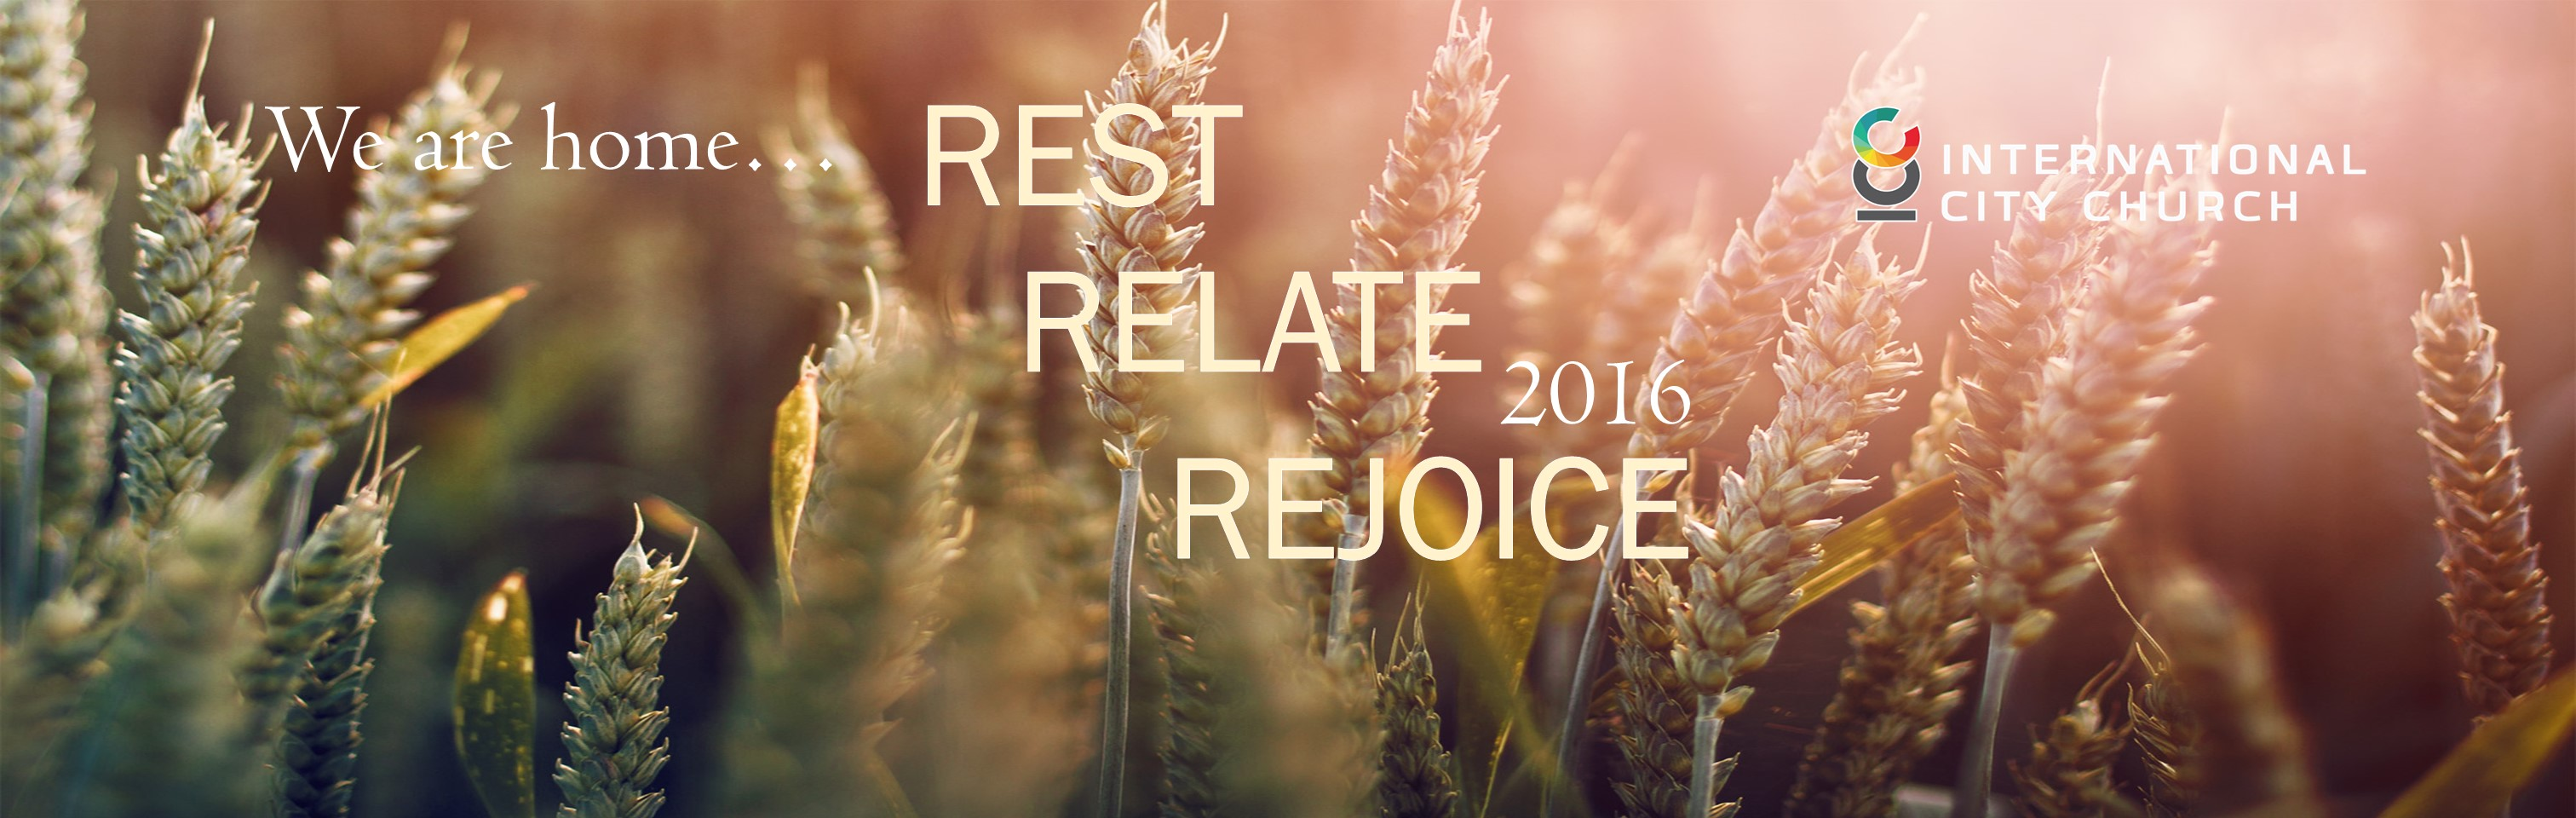 RestRelateRejoice-2016-Updated-4to1